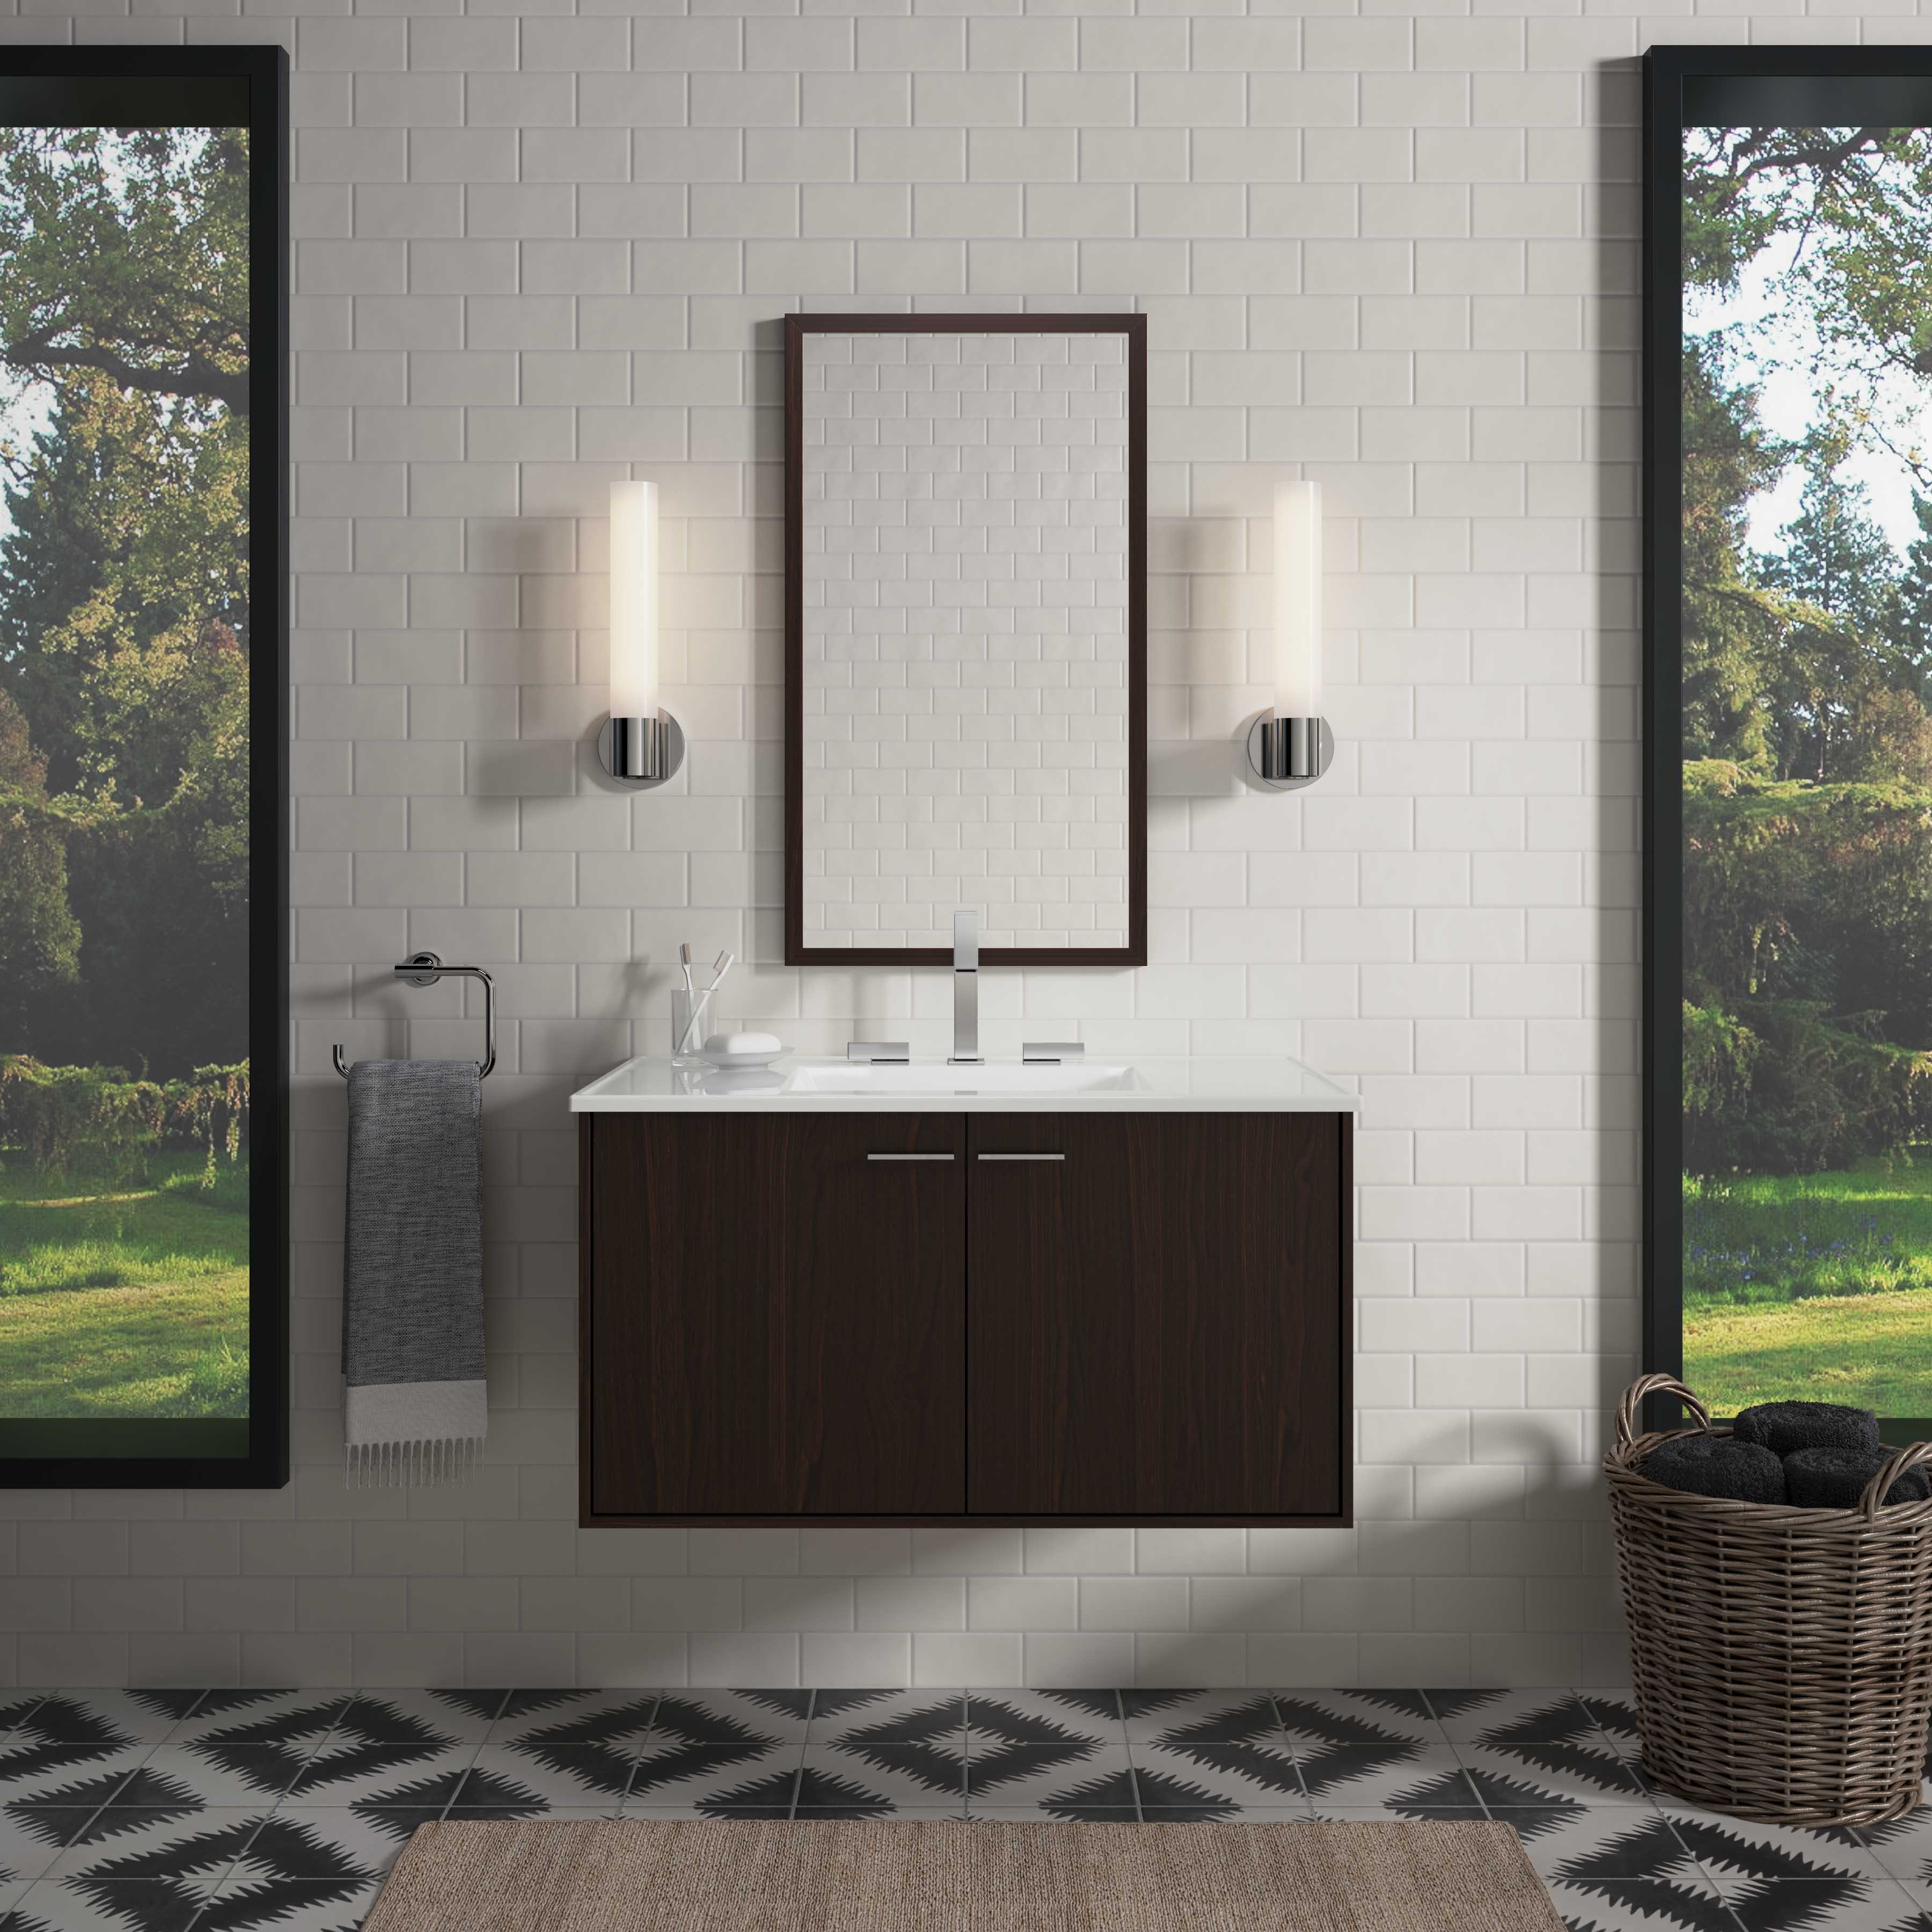 Jute® Vanity     Jute legs     Verdera medicine cabinets     Toobi® Faucet     The horizontal lines of the vanity and surrounding wall contrast nicely with the curved edges of the sinks and toilet to create a striking composition.